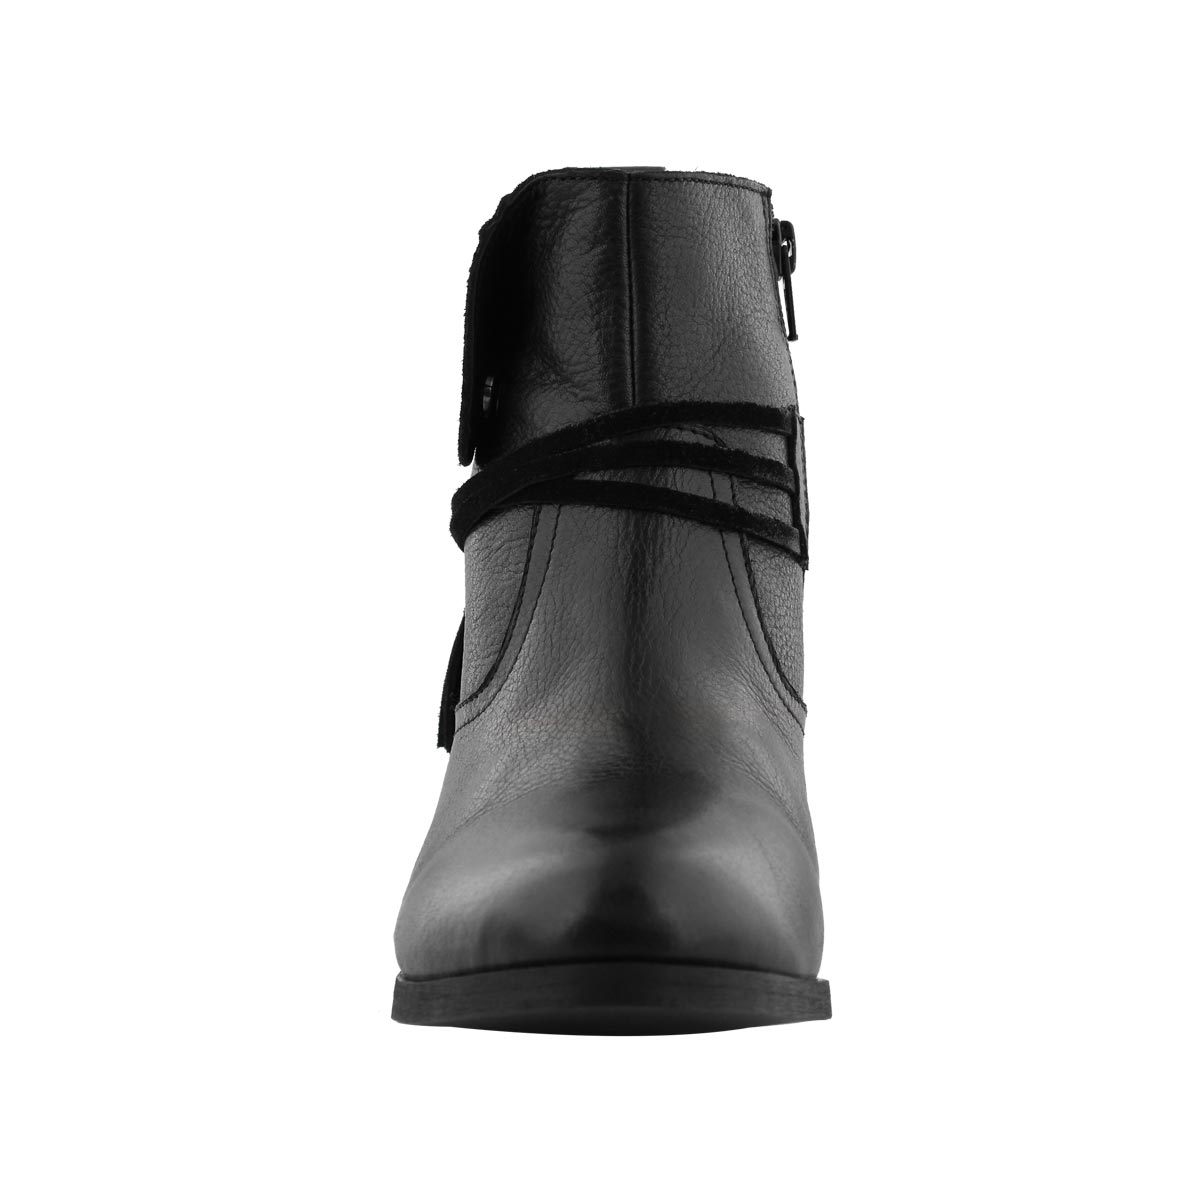 Lds Leah black side zip ankle boot